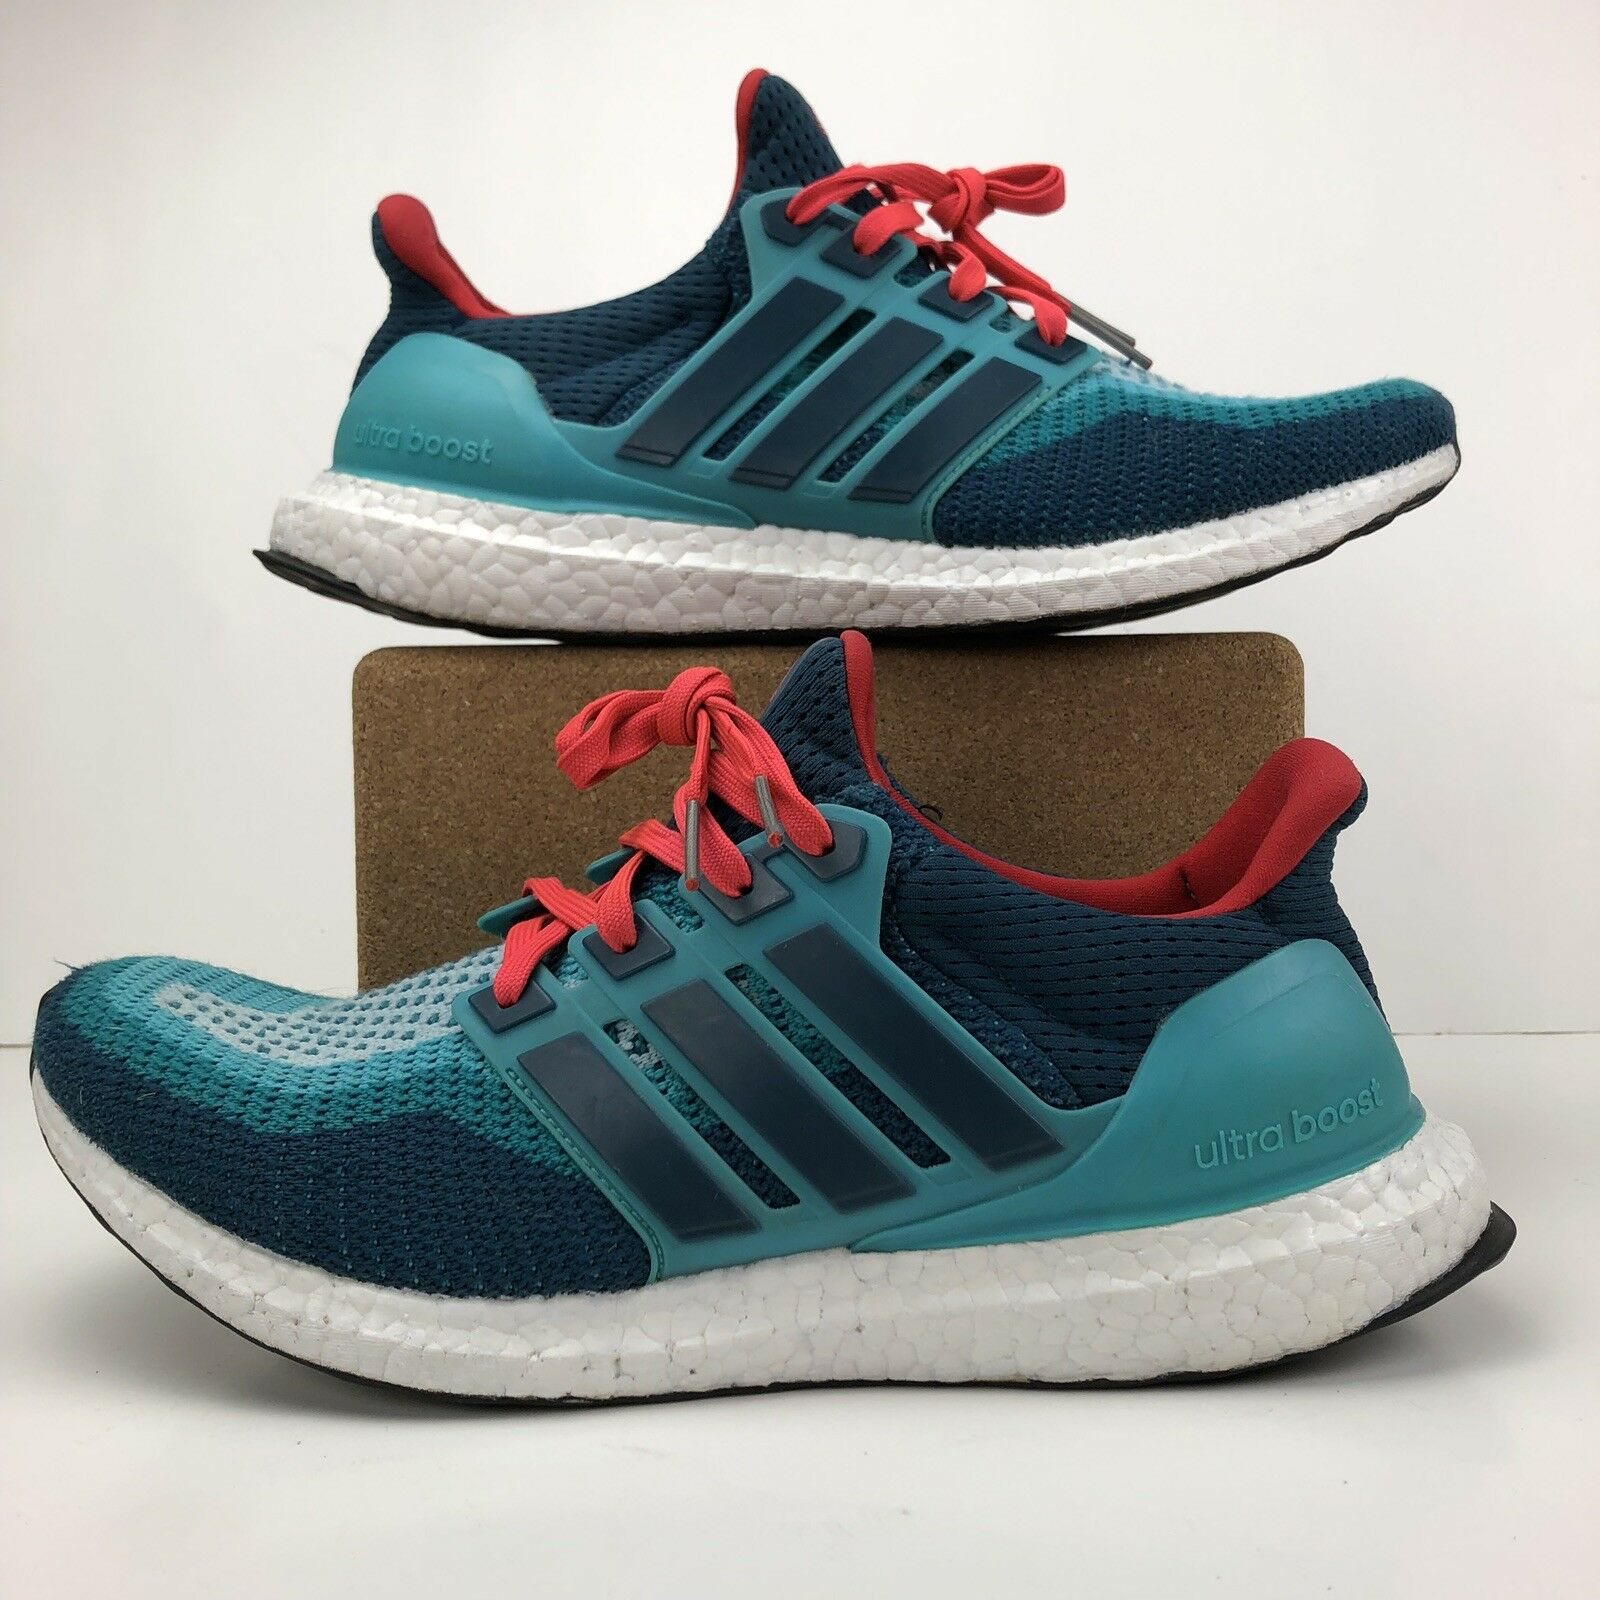 Adidas Ultra Boost 2.0   Mineral Green   Men's Size 10